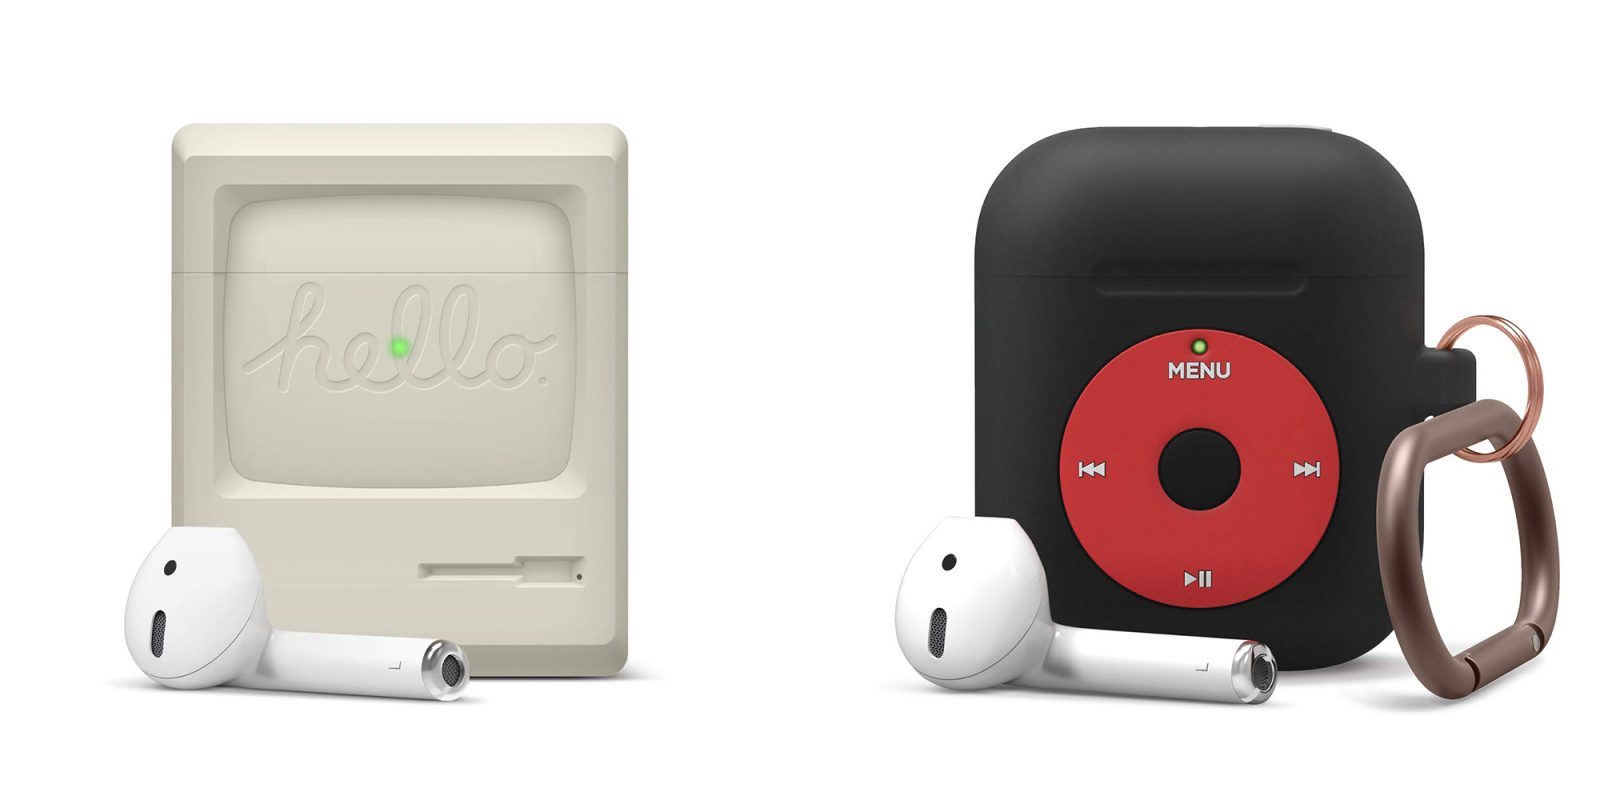 elago's latest vintage-inspired AirPods cases are on sale from $9